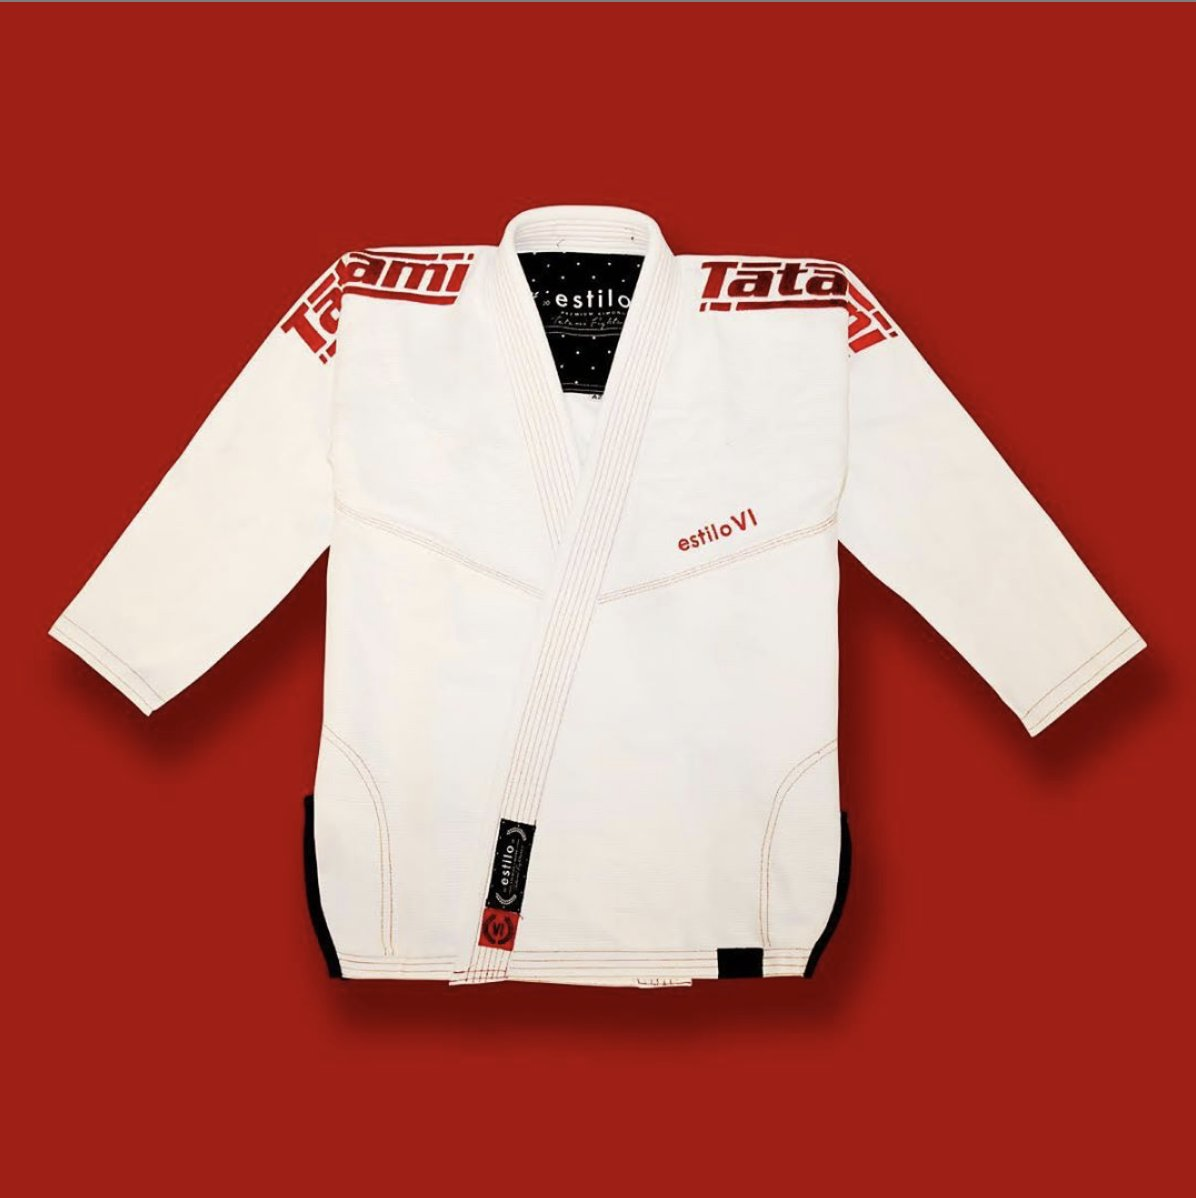 Our Jiu Jitsu Outlet now includes our premium Estilo 6 gi. A fantastic opportunity to add the crown jewel of our range into your own gi collection. This also includes a brand new colour option, with the White & Crimson. https://t.co/F8W4V35uAE https://t.co/elclXipCW9